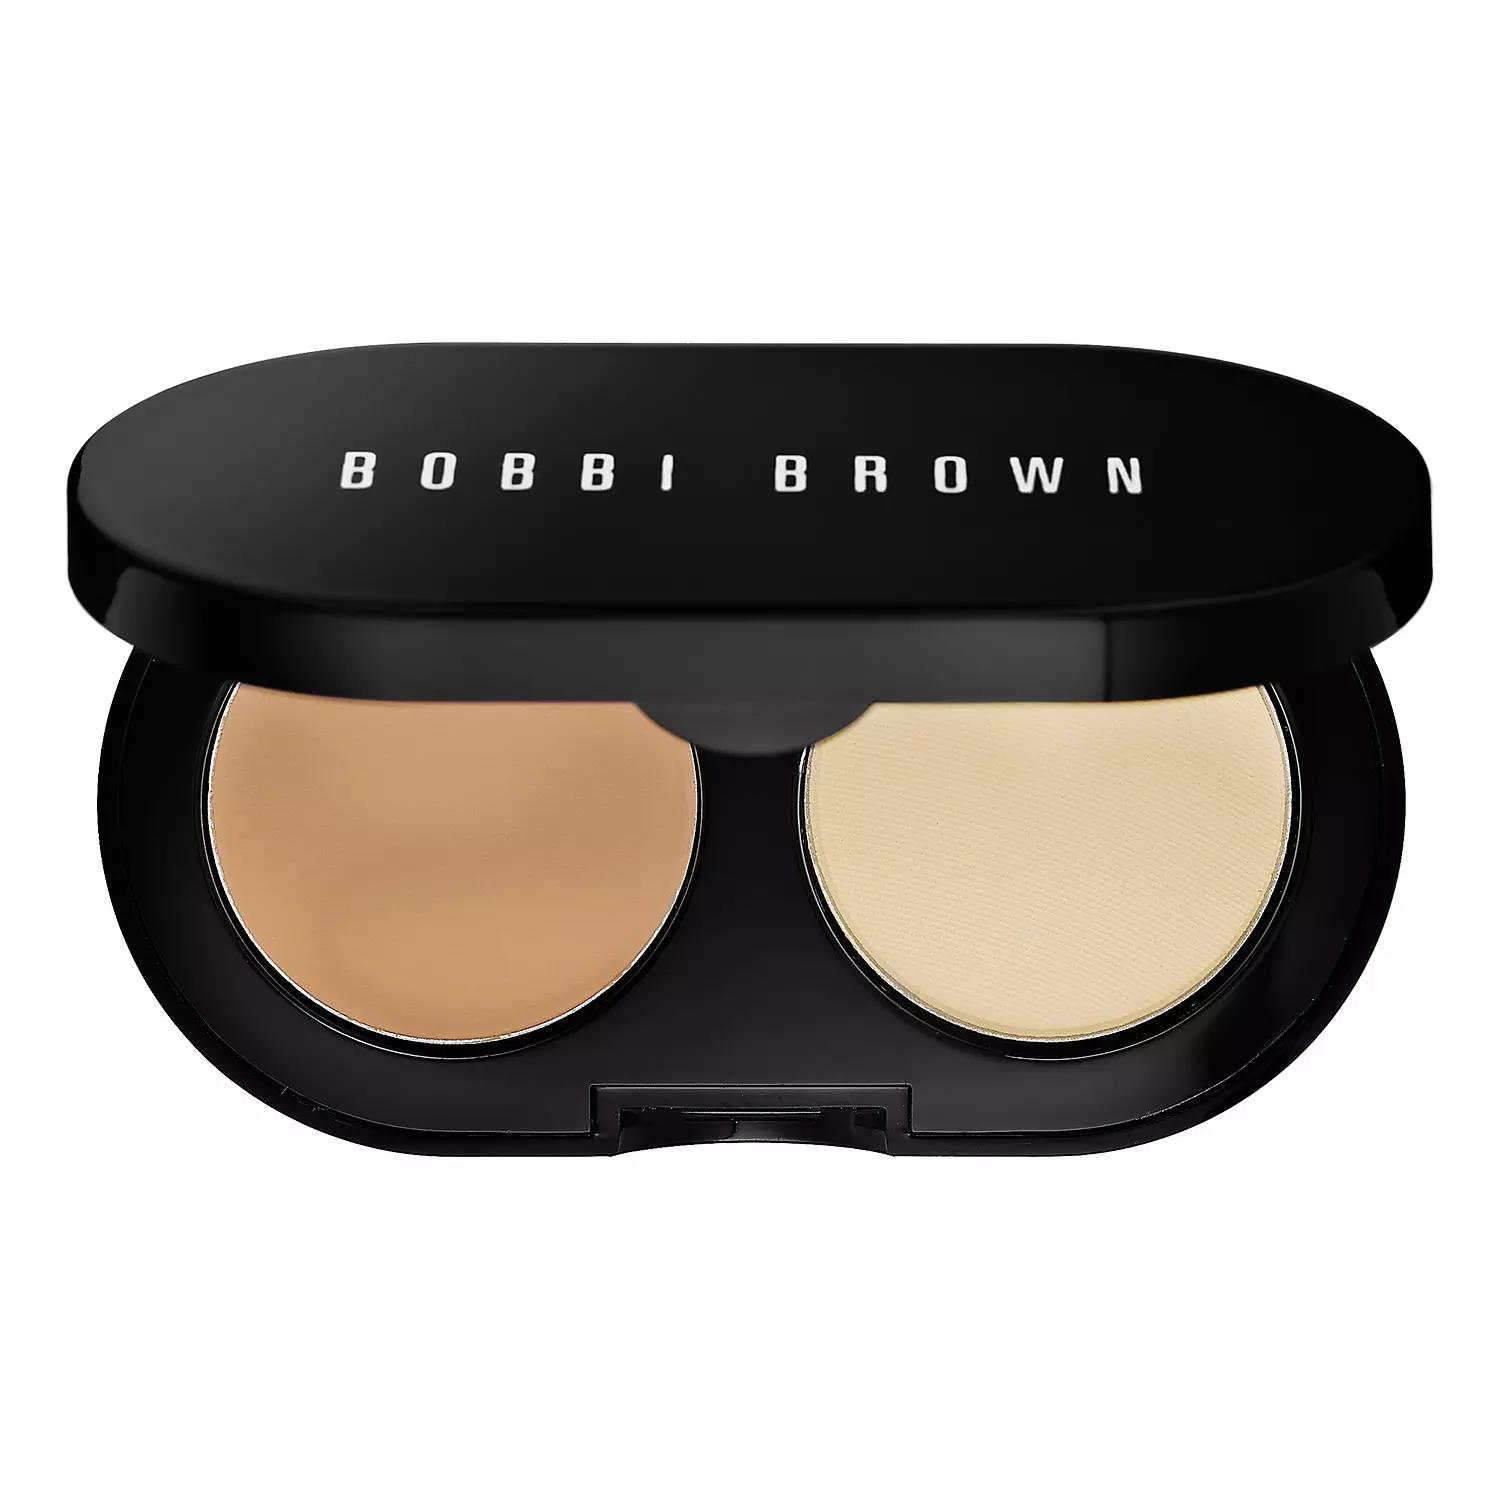 Bobbi Brown Creamy Concealer Kit Natural Tan/Pale Yellow